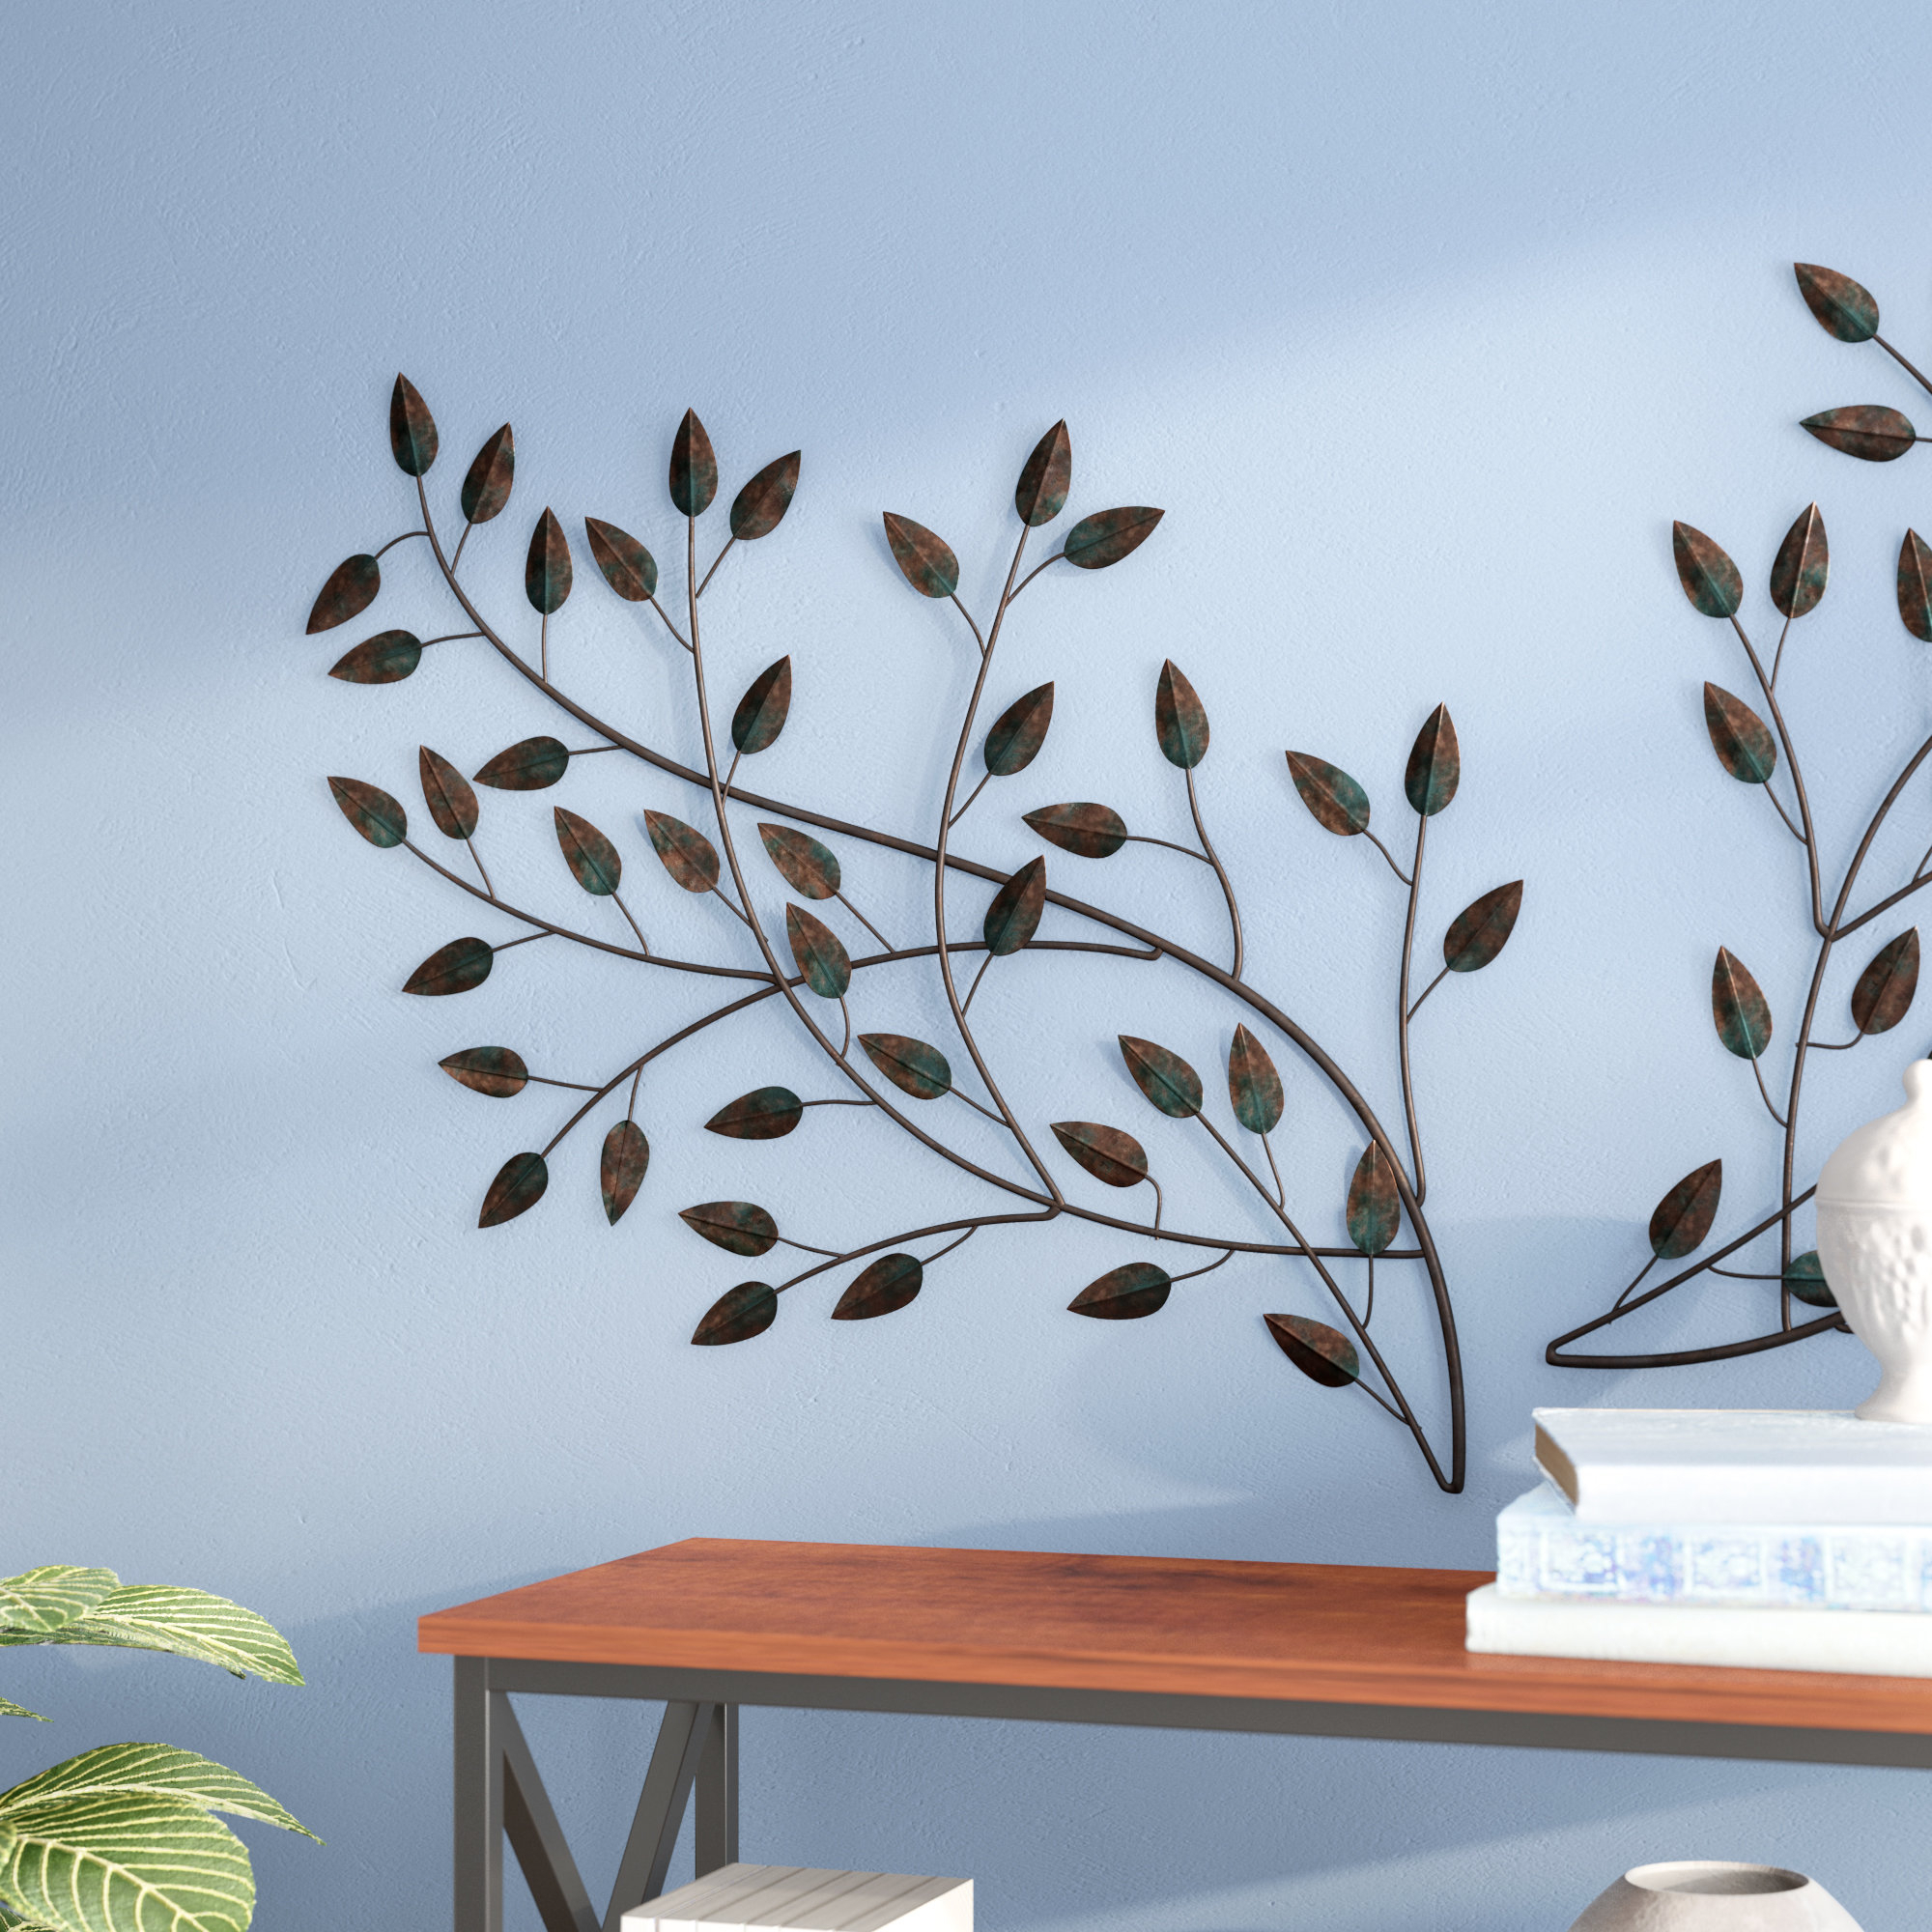 Flowing Leaves Wall Decor | Wayfair pertaining to Flowing Leaves Wall Decor (Image 15 of 30)